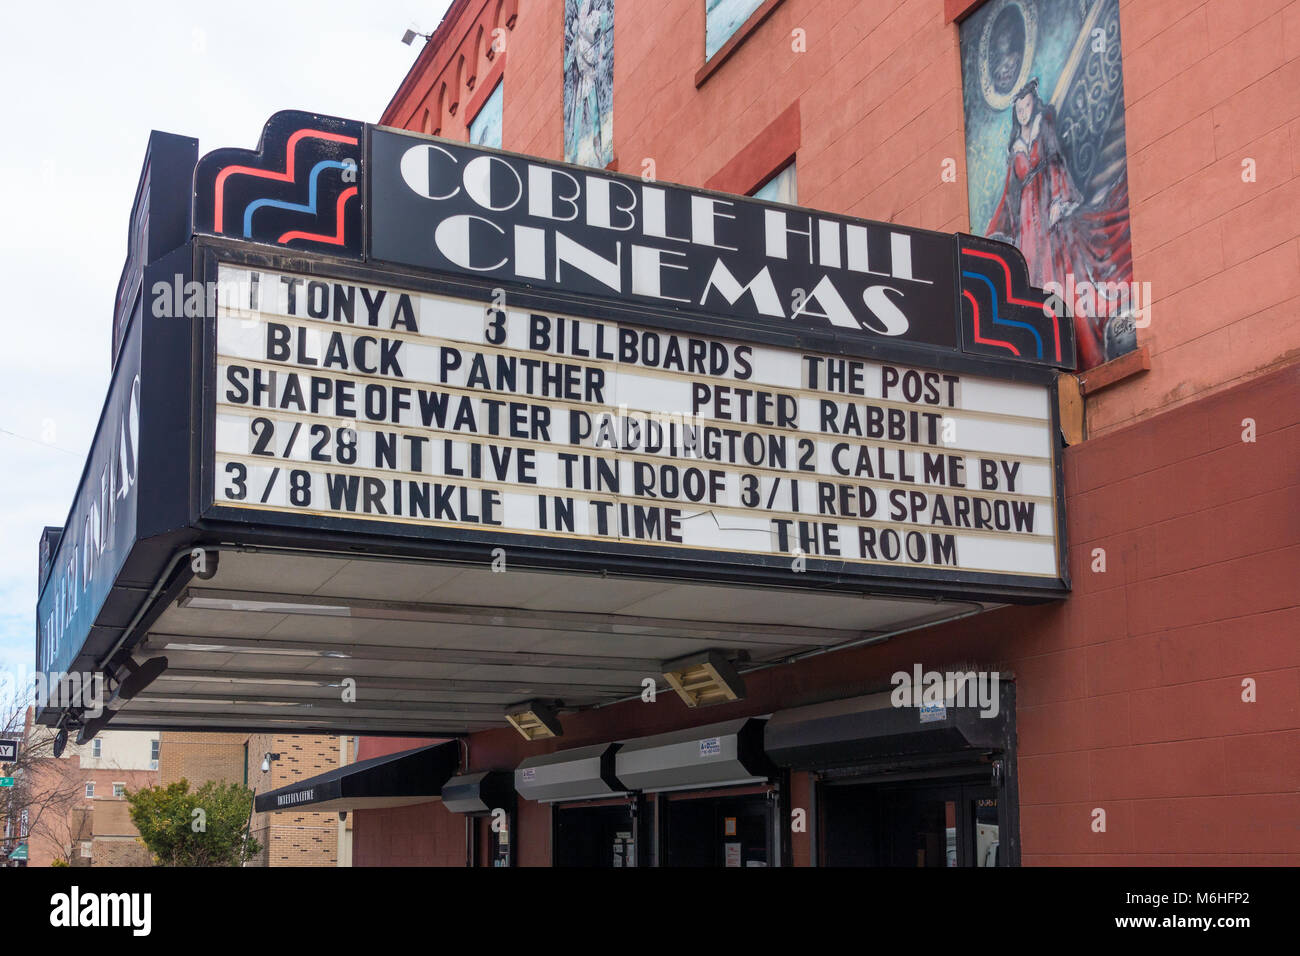 The Cobble Hill Cinemas marquee - Stock Image